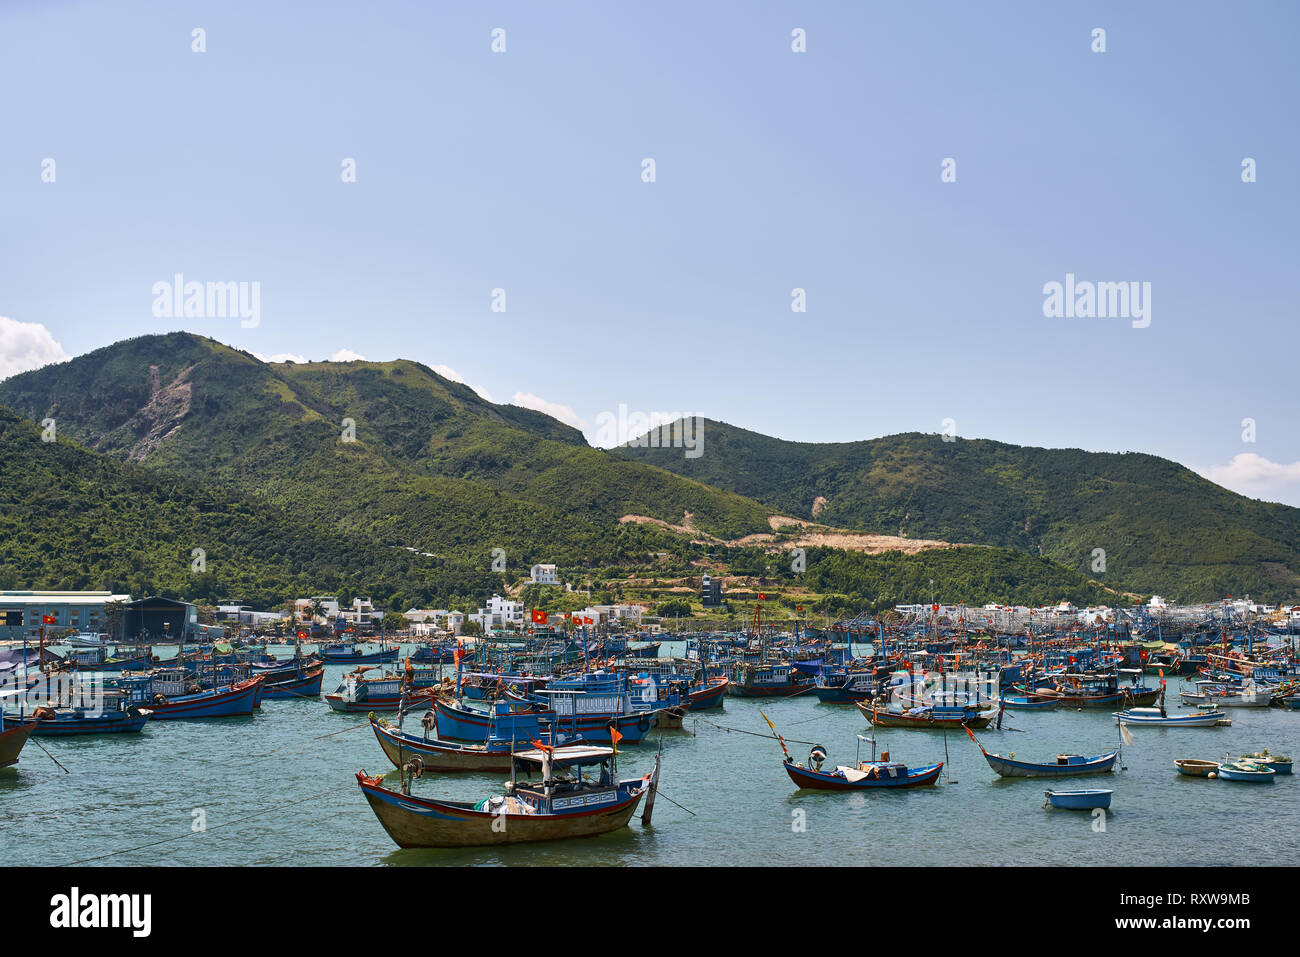 Many colorful wooden fishing boats in the sea bay on the background of the small village and green hills and the blue sky. Sun is shining onto them. H - Stock Image